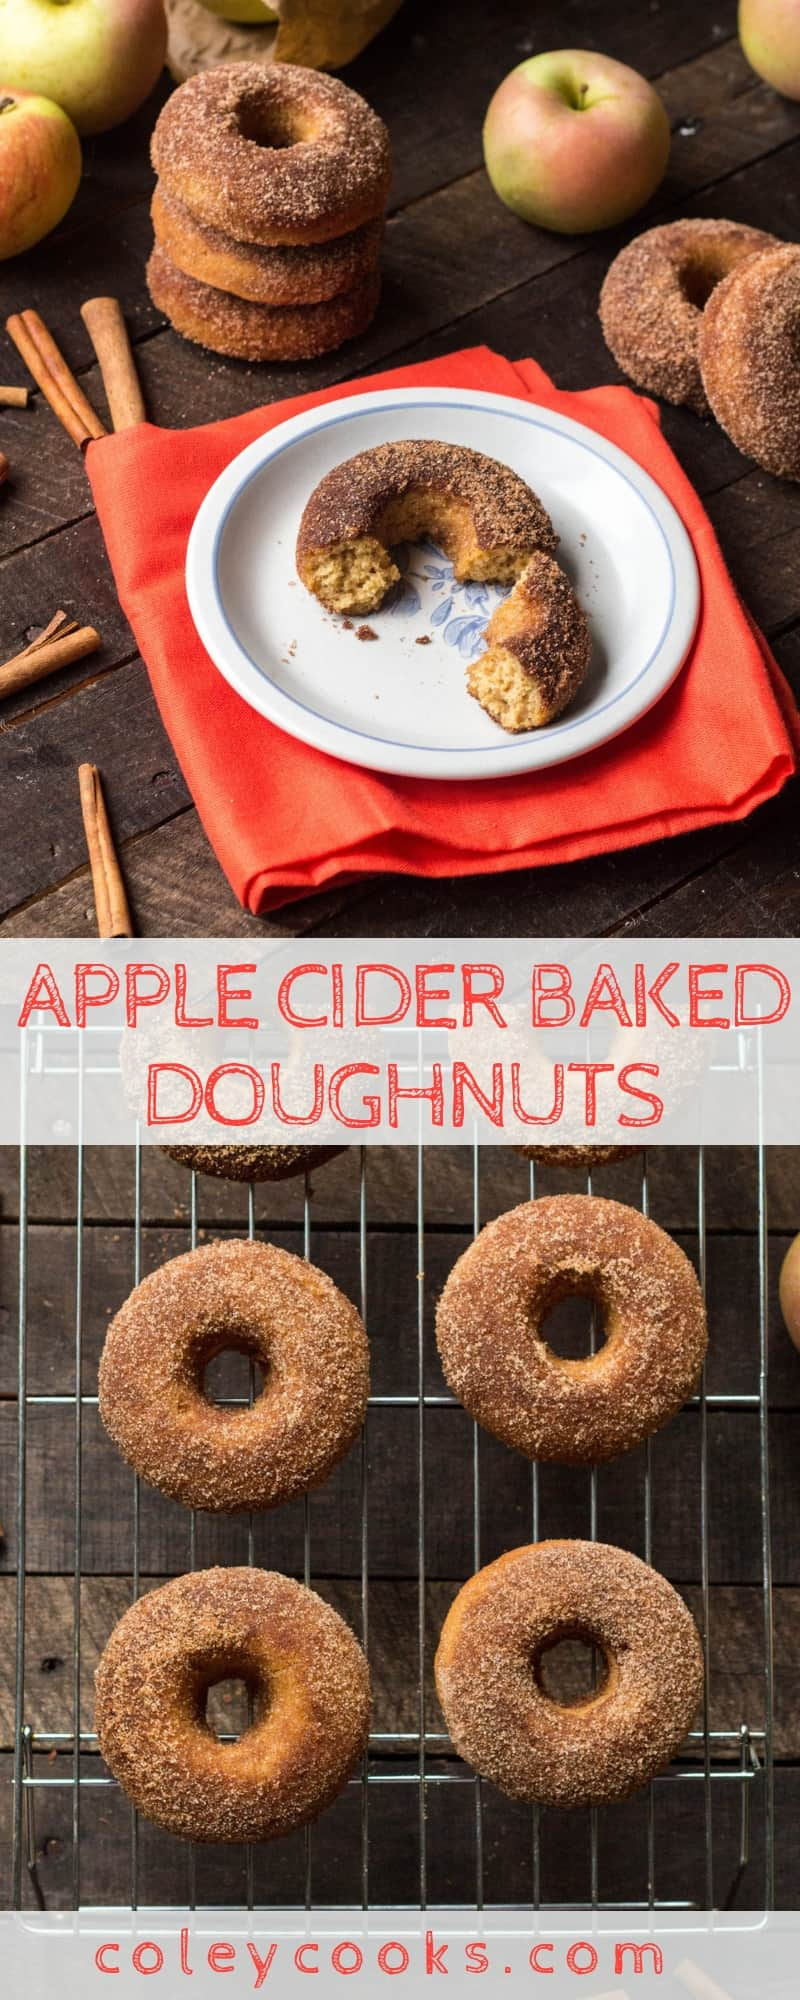 APPLE CIDER BAKED DOUGHNUTS | Healthier baked apple cider doughnuts! This healthy recipe is easy and delicious! #doughnuts #donuts #easy #apple #cider #recipe #brunch #breakfast | ColeyCooks.com